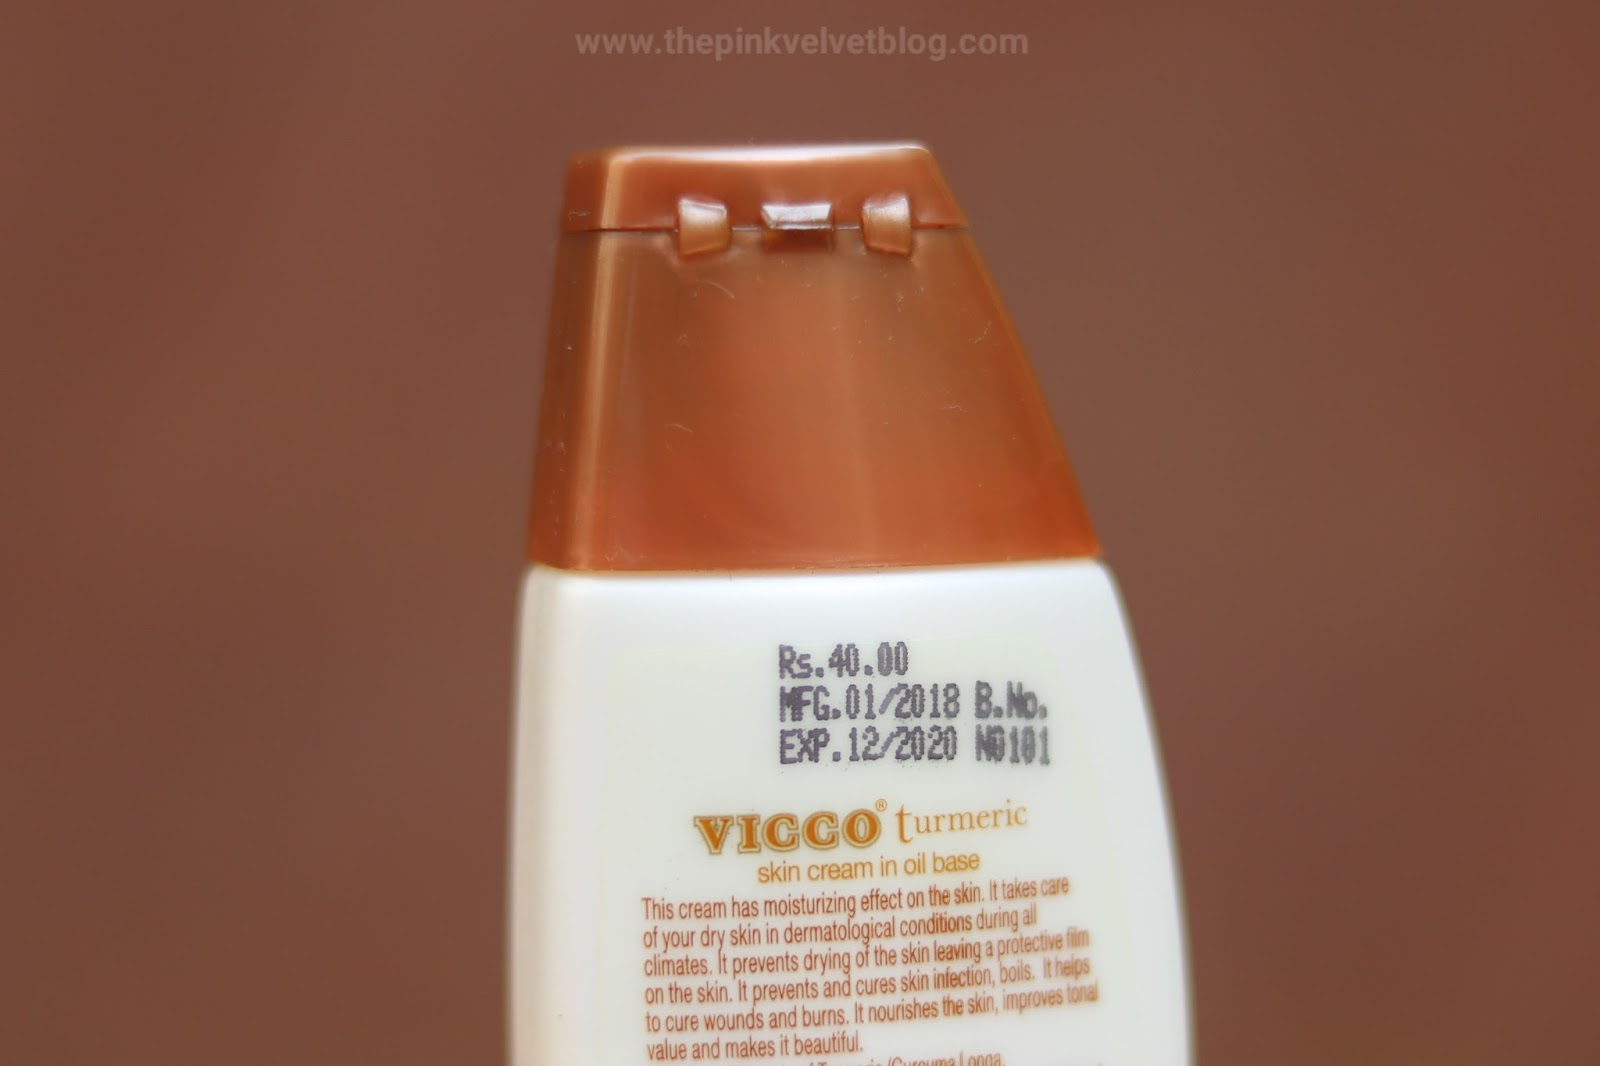 VICCO Turmeric Skin Cream in Oil Base